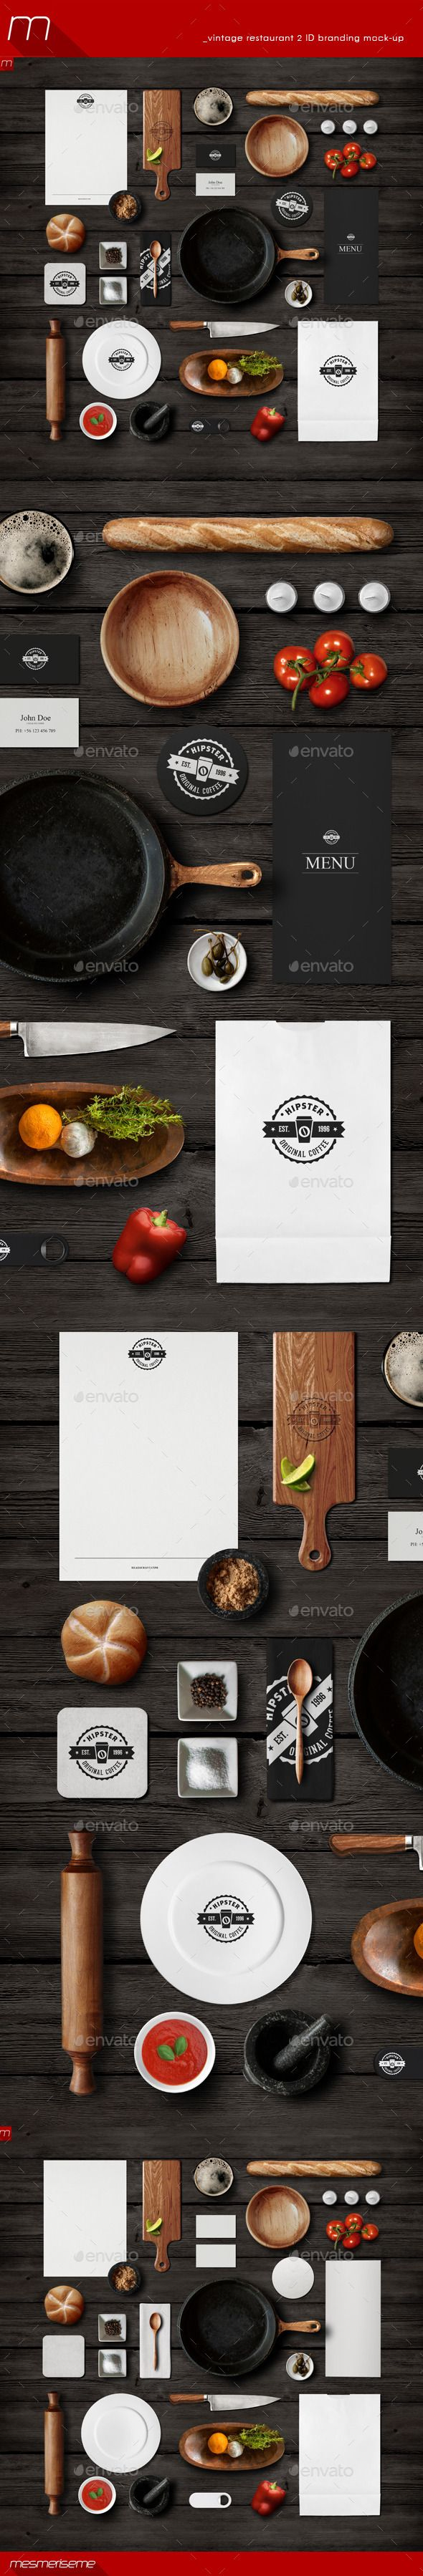 Vintage Restaurant 2 Identity Branding Mock-up - Miscellaneous Product Mock-Ups